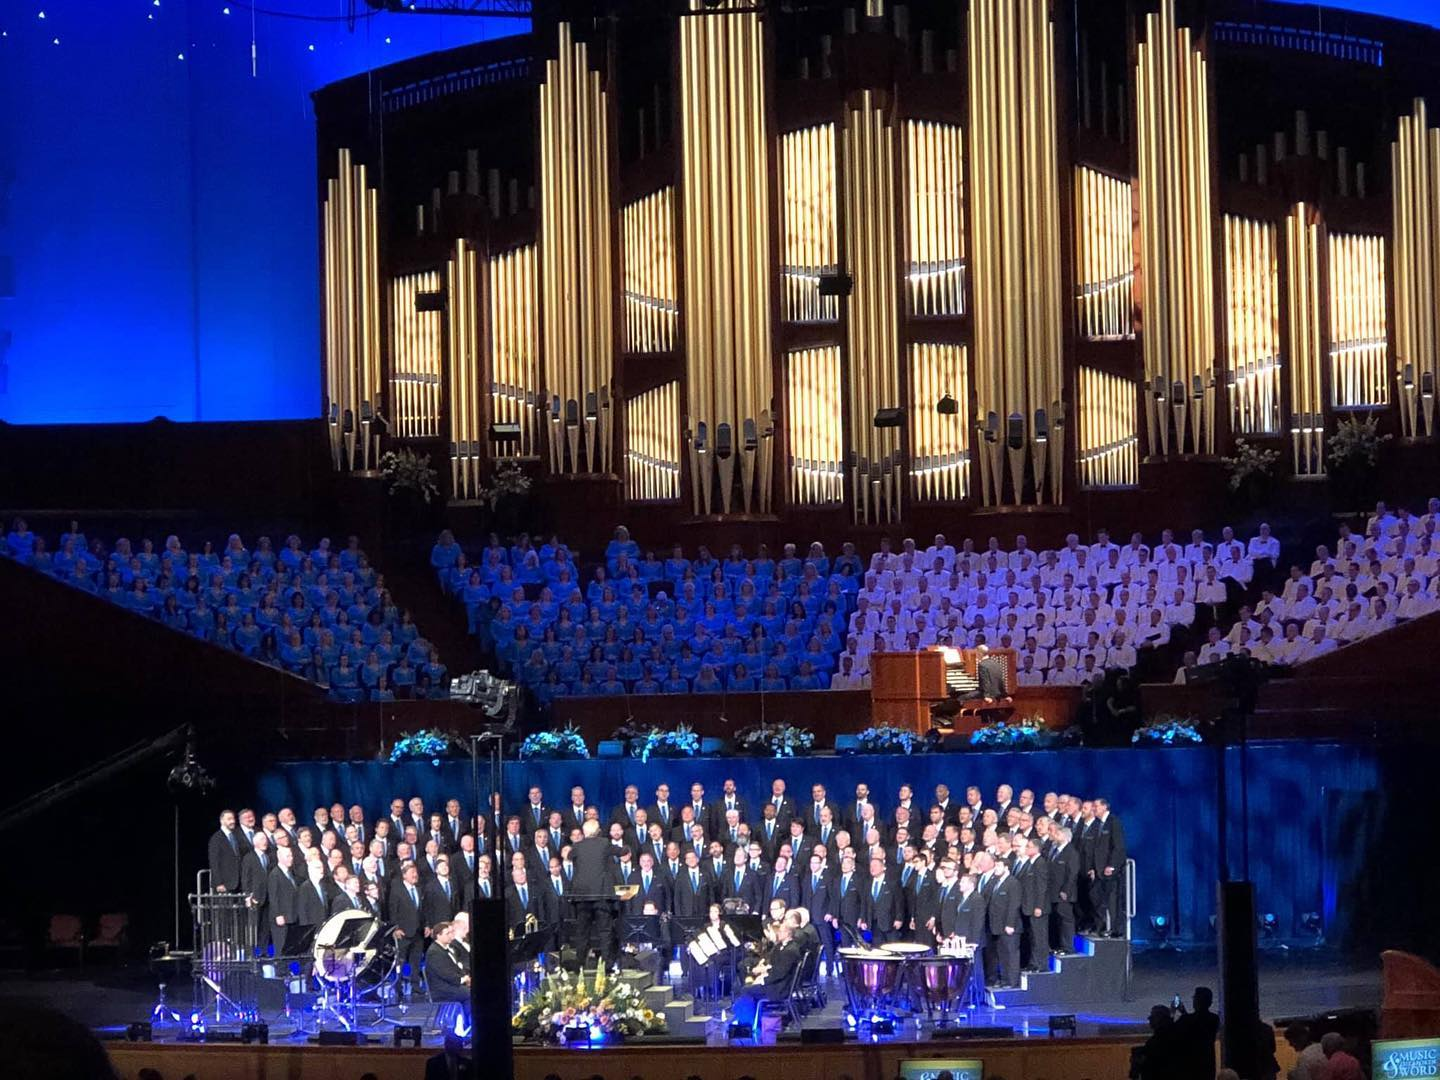 The Tabernacle Choir and the Vocal Majority, July 7, 2019, Salt Lake City